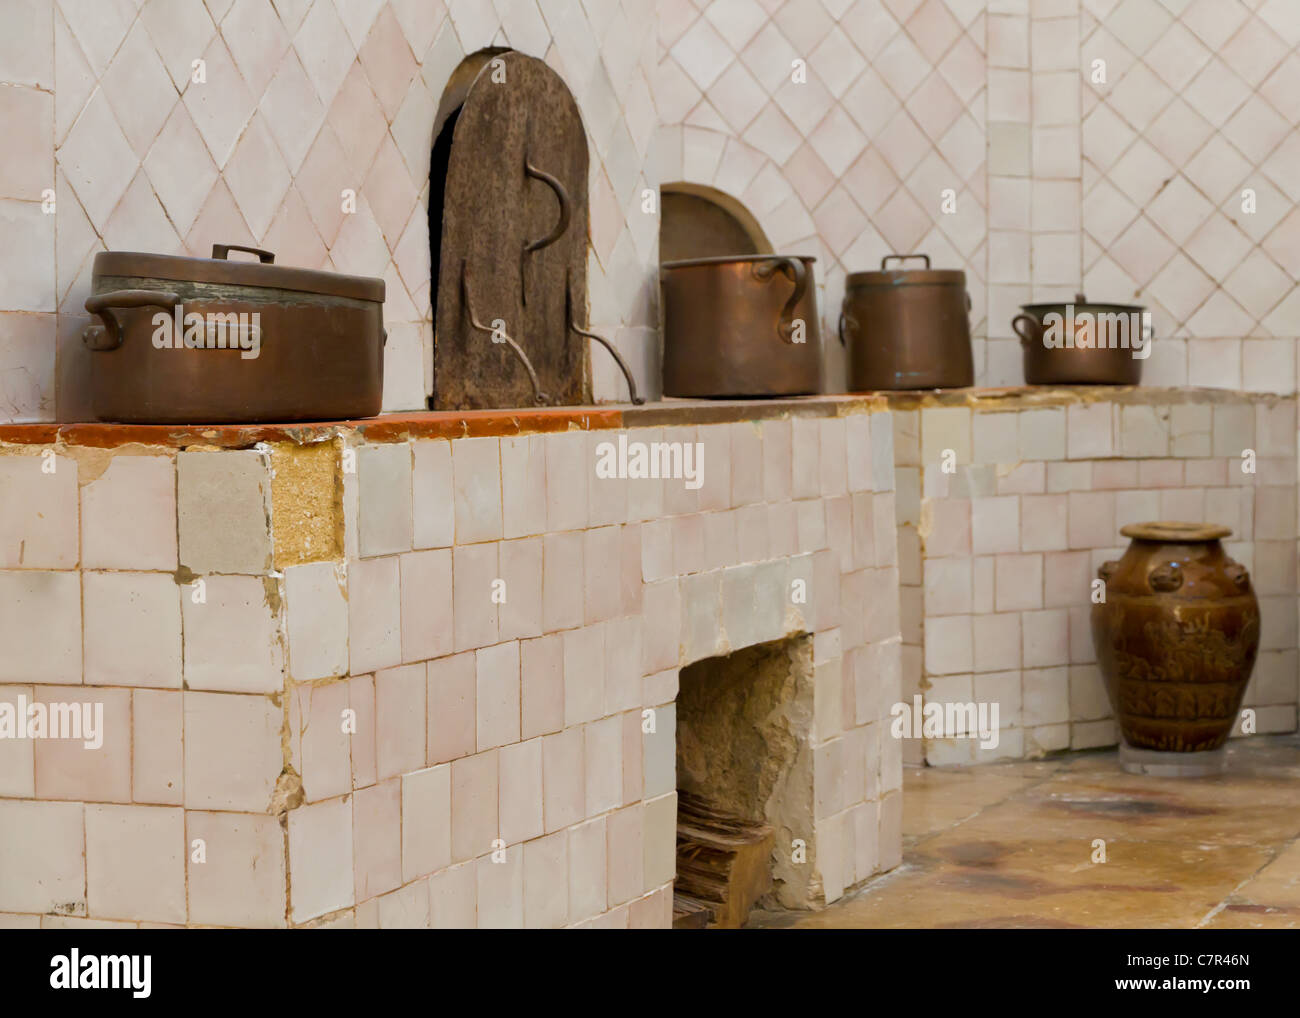 Cucina A Gas Vintage Vintage Kitchen Stock Photos Vintage Kitchen Stock Images Alamy